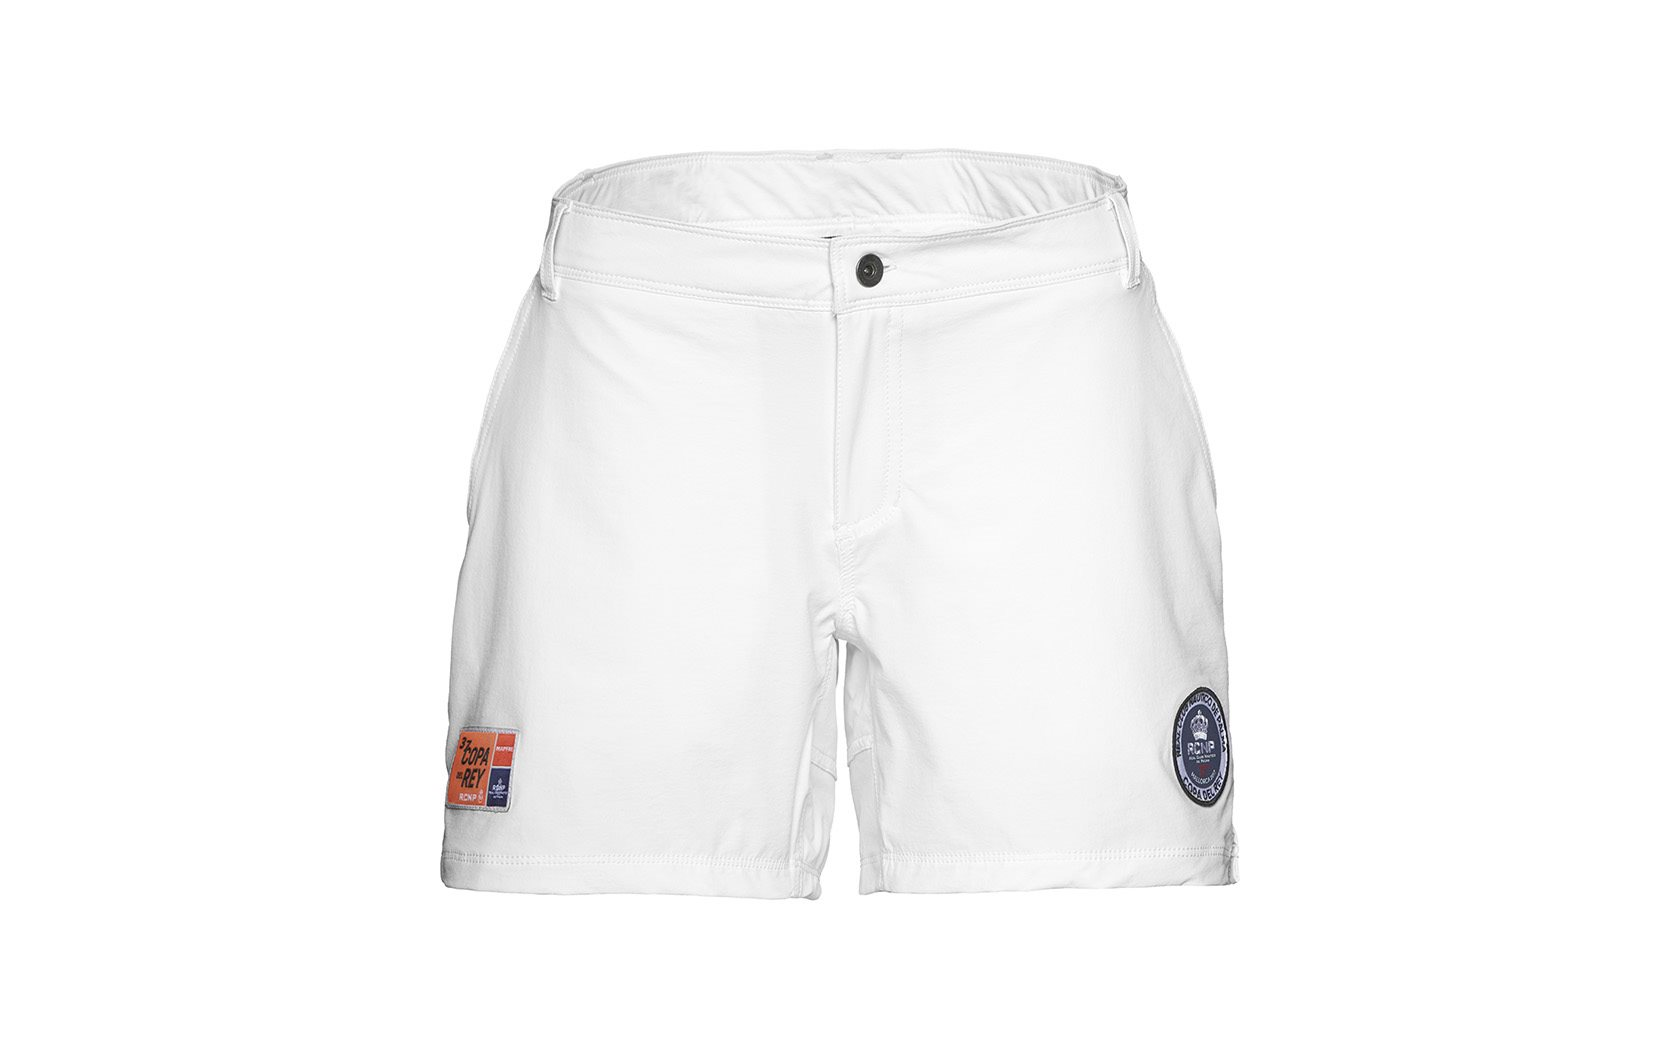 W COPA DEL REY TECHNICAL SHORTS